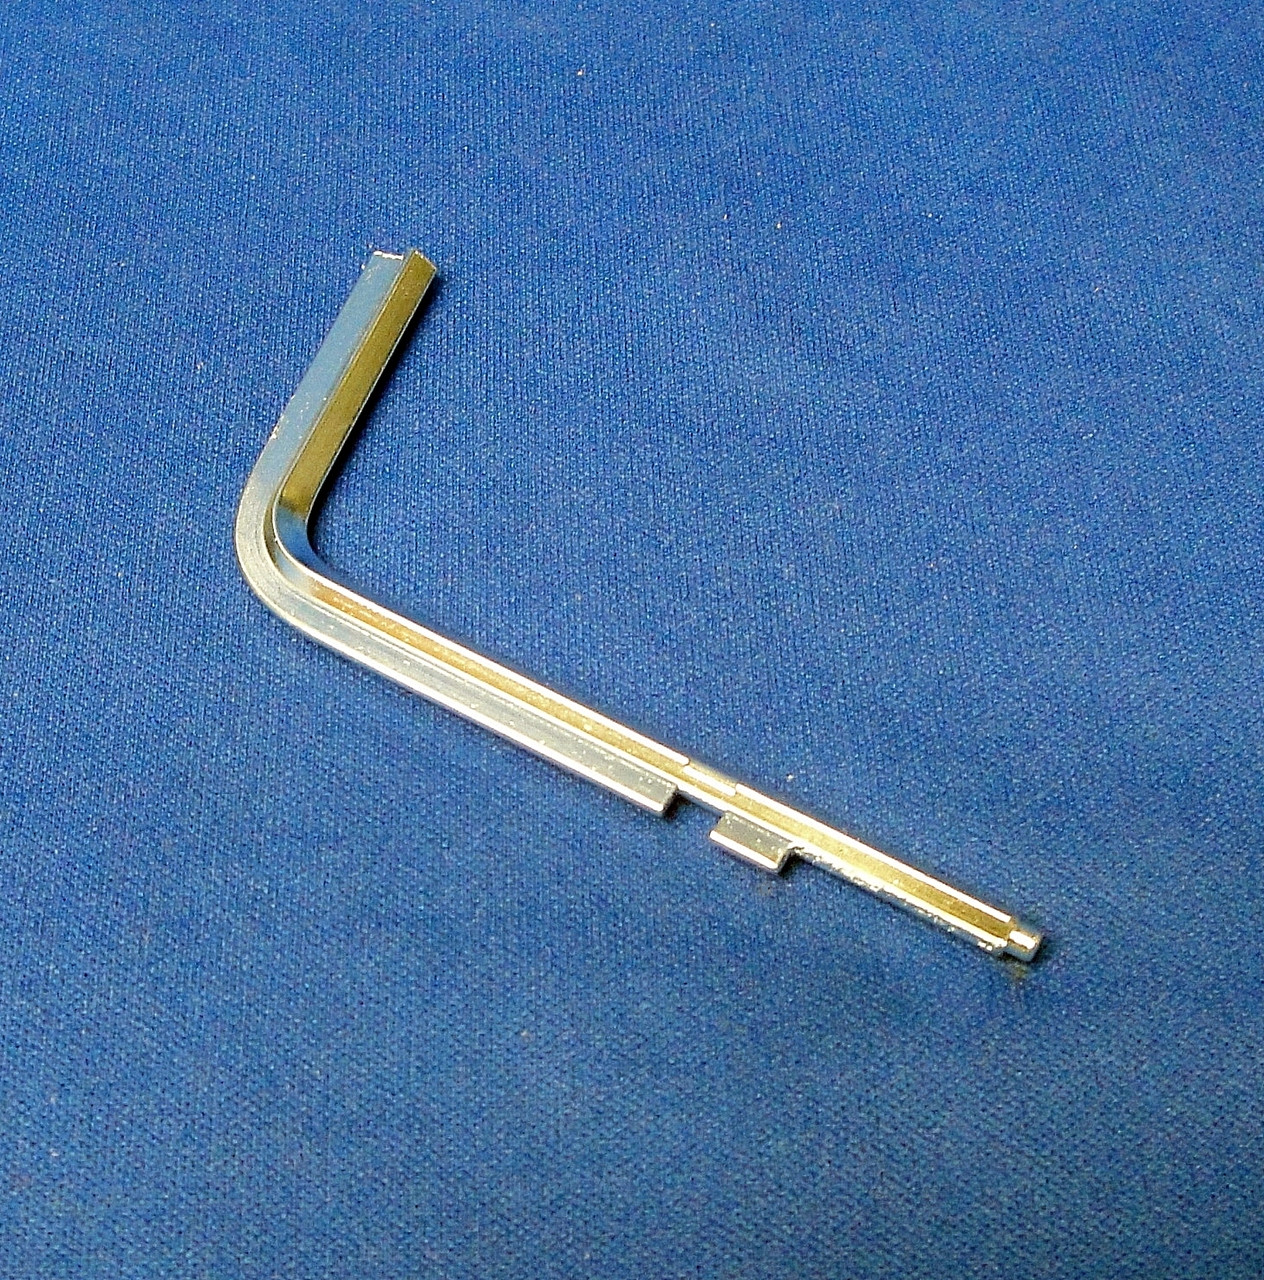 Sargent & Greenleaf Change Key for 6700 Series & others